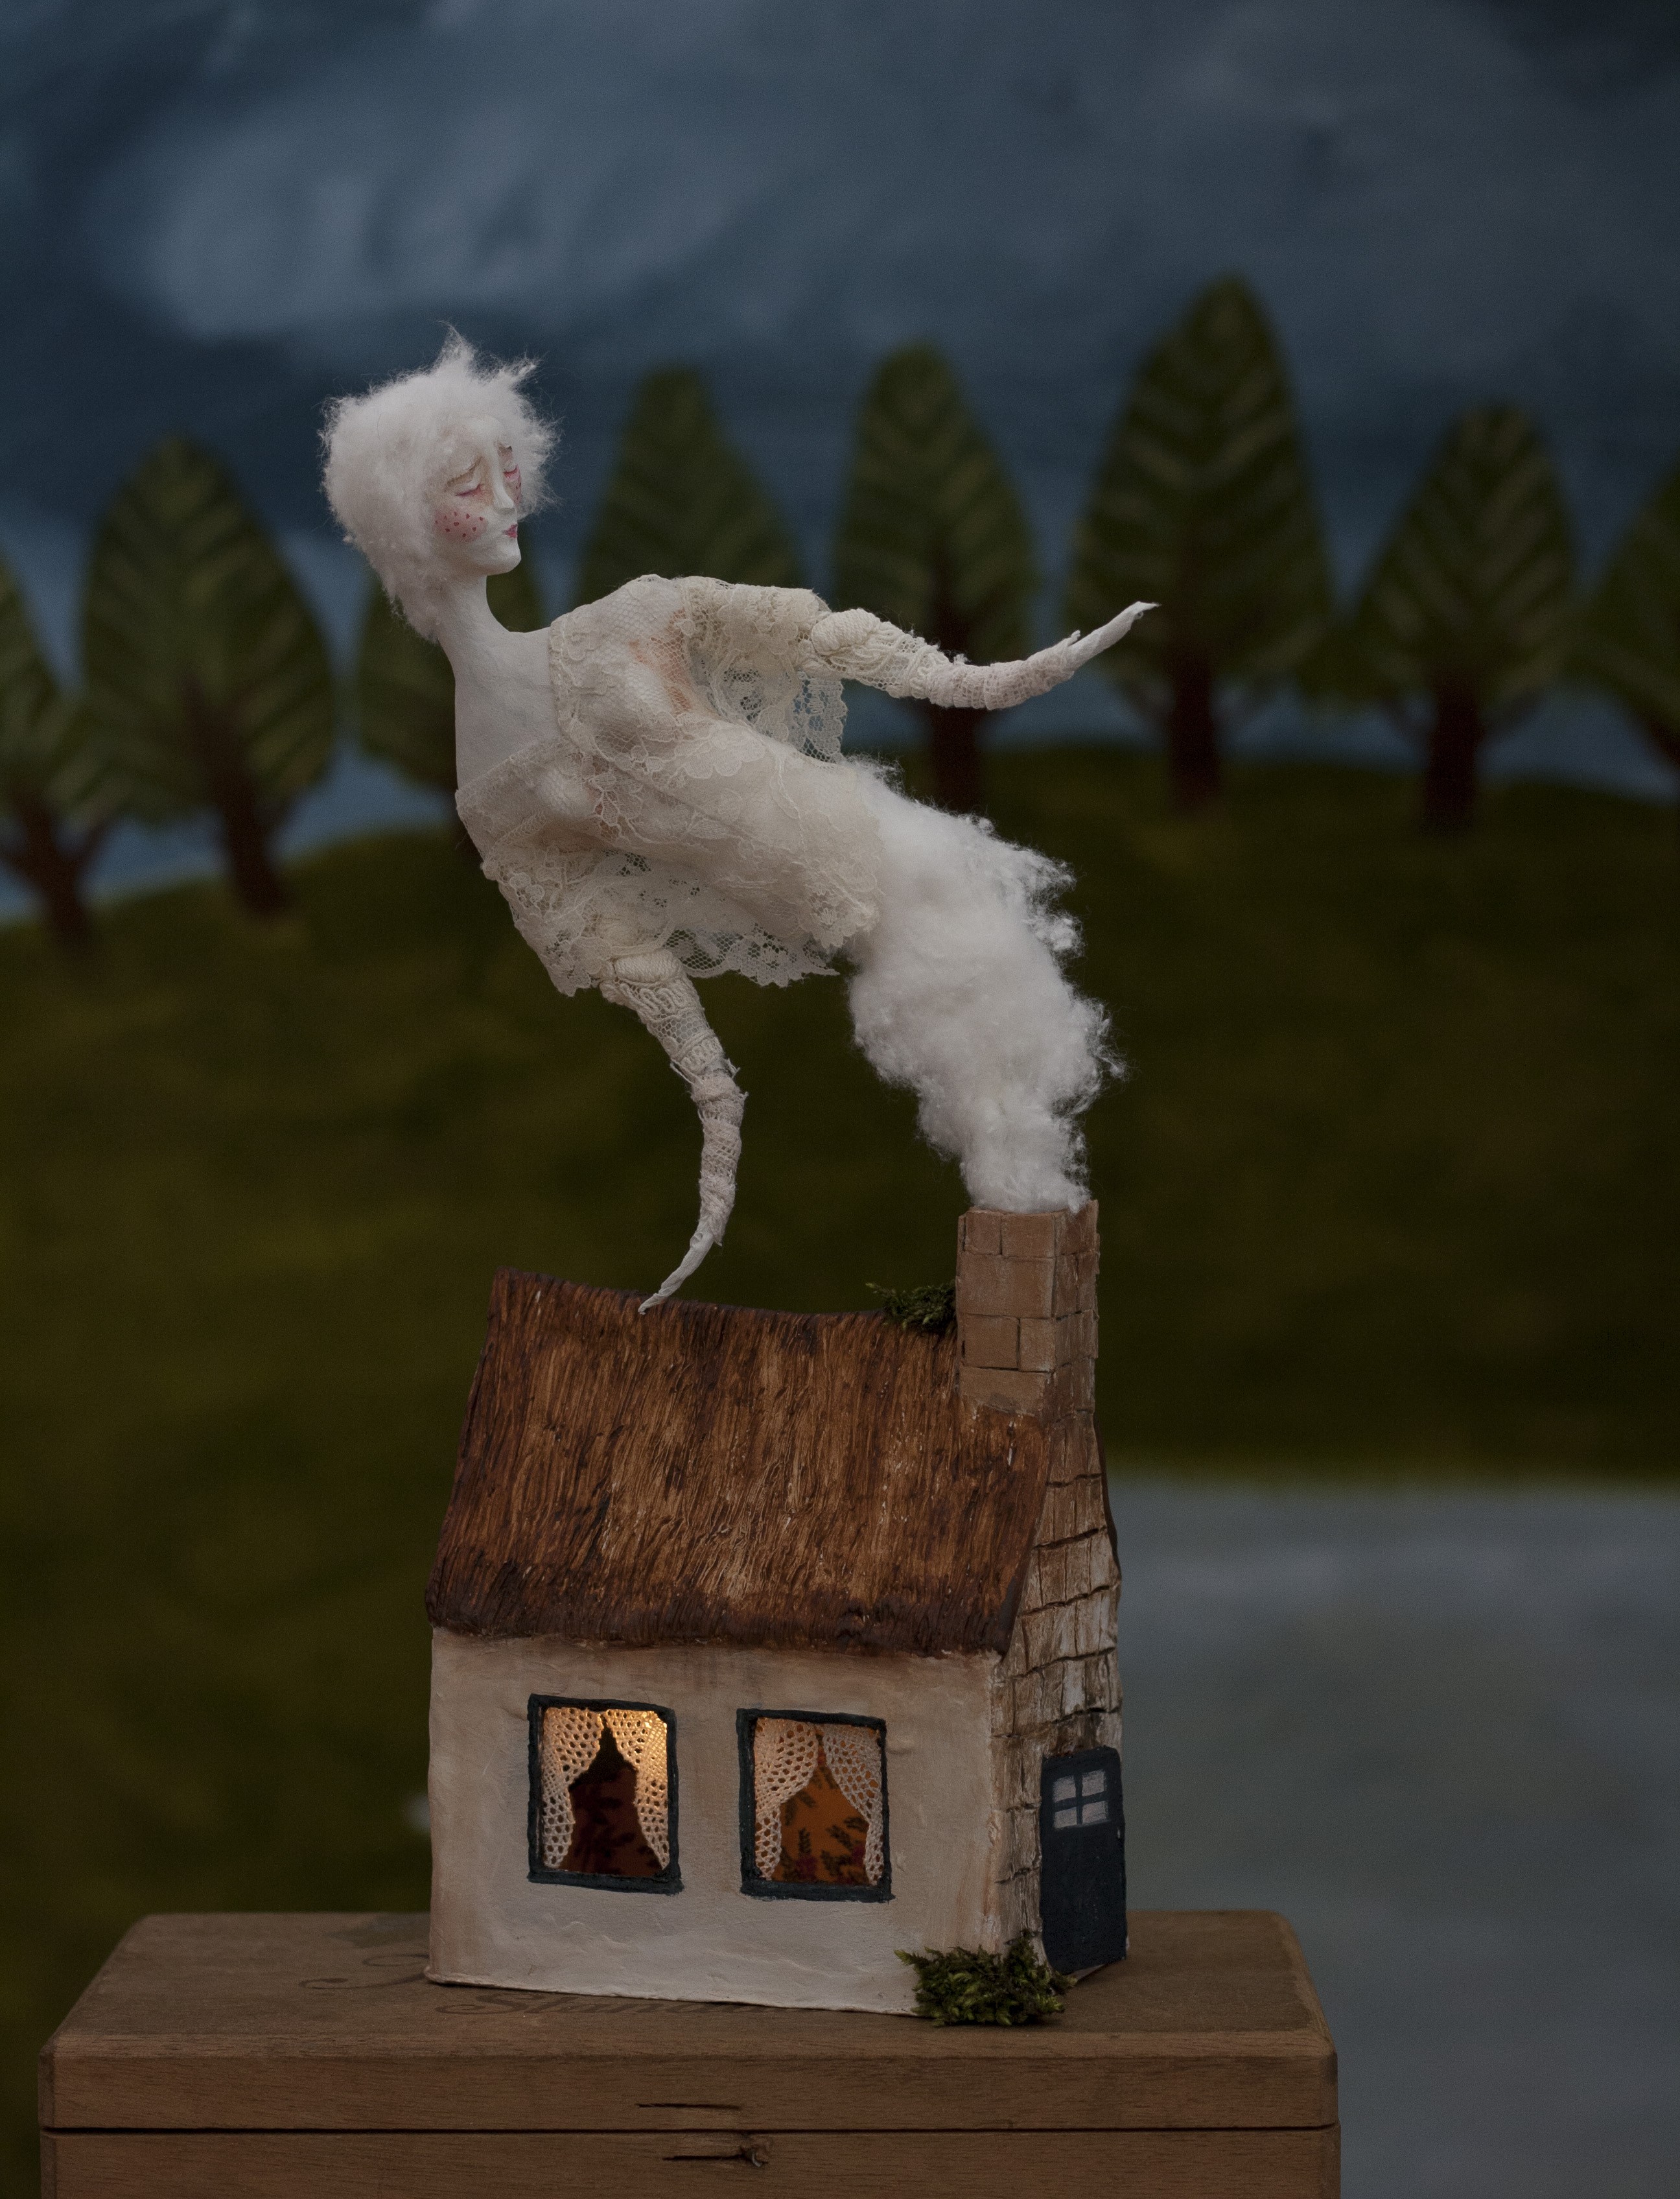 The Chimney Ghost